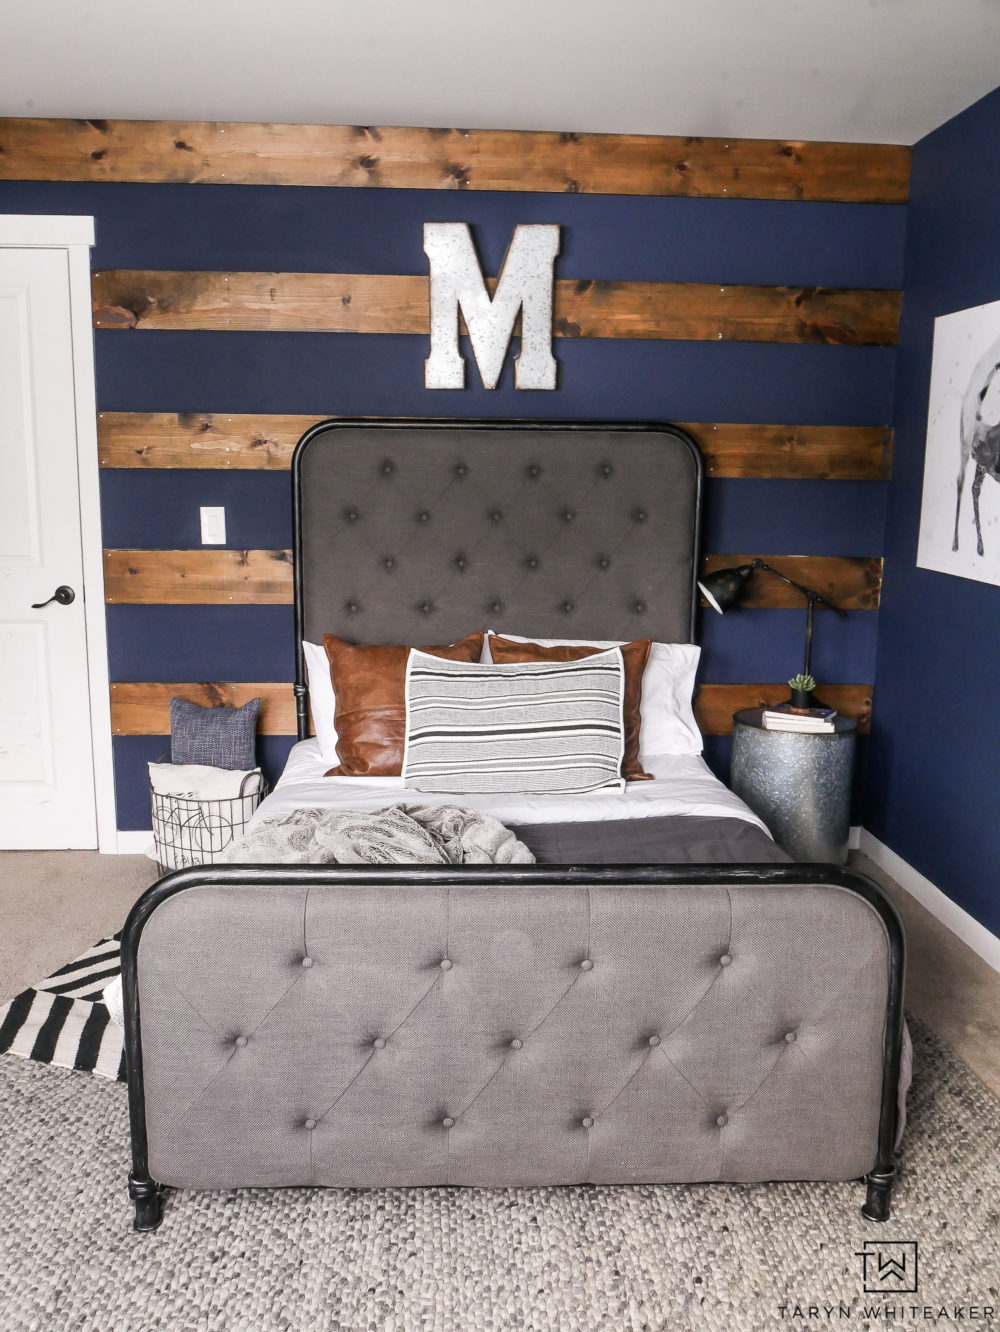 Rustic boy's room with dark navy walls and wood accents. Love the industrial decor and pops of pattern.